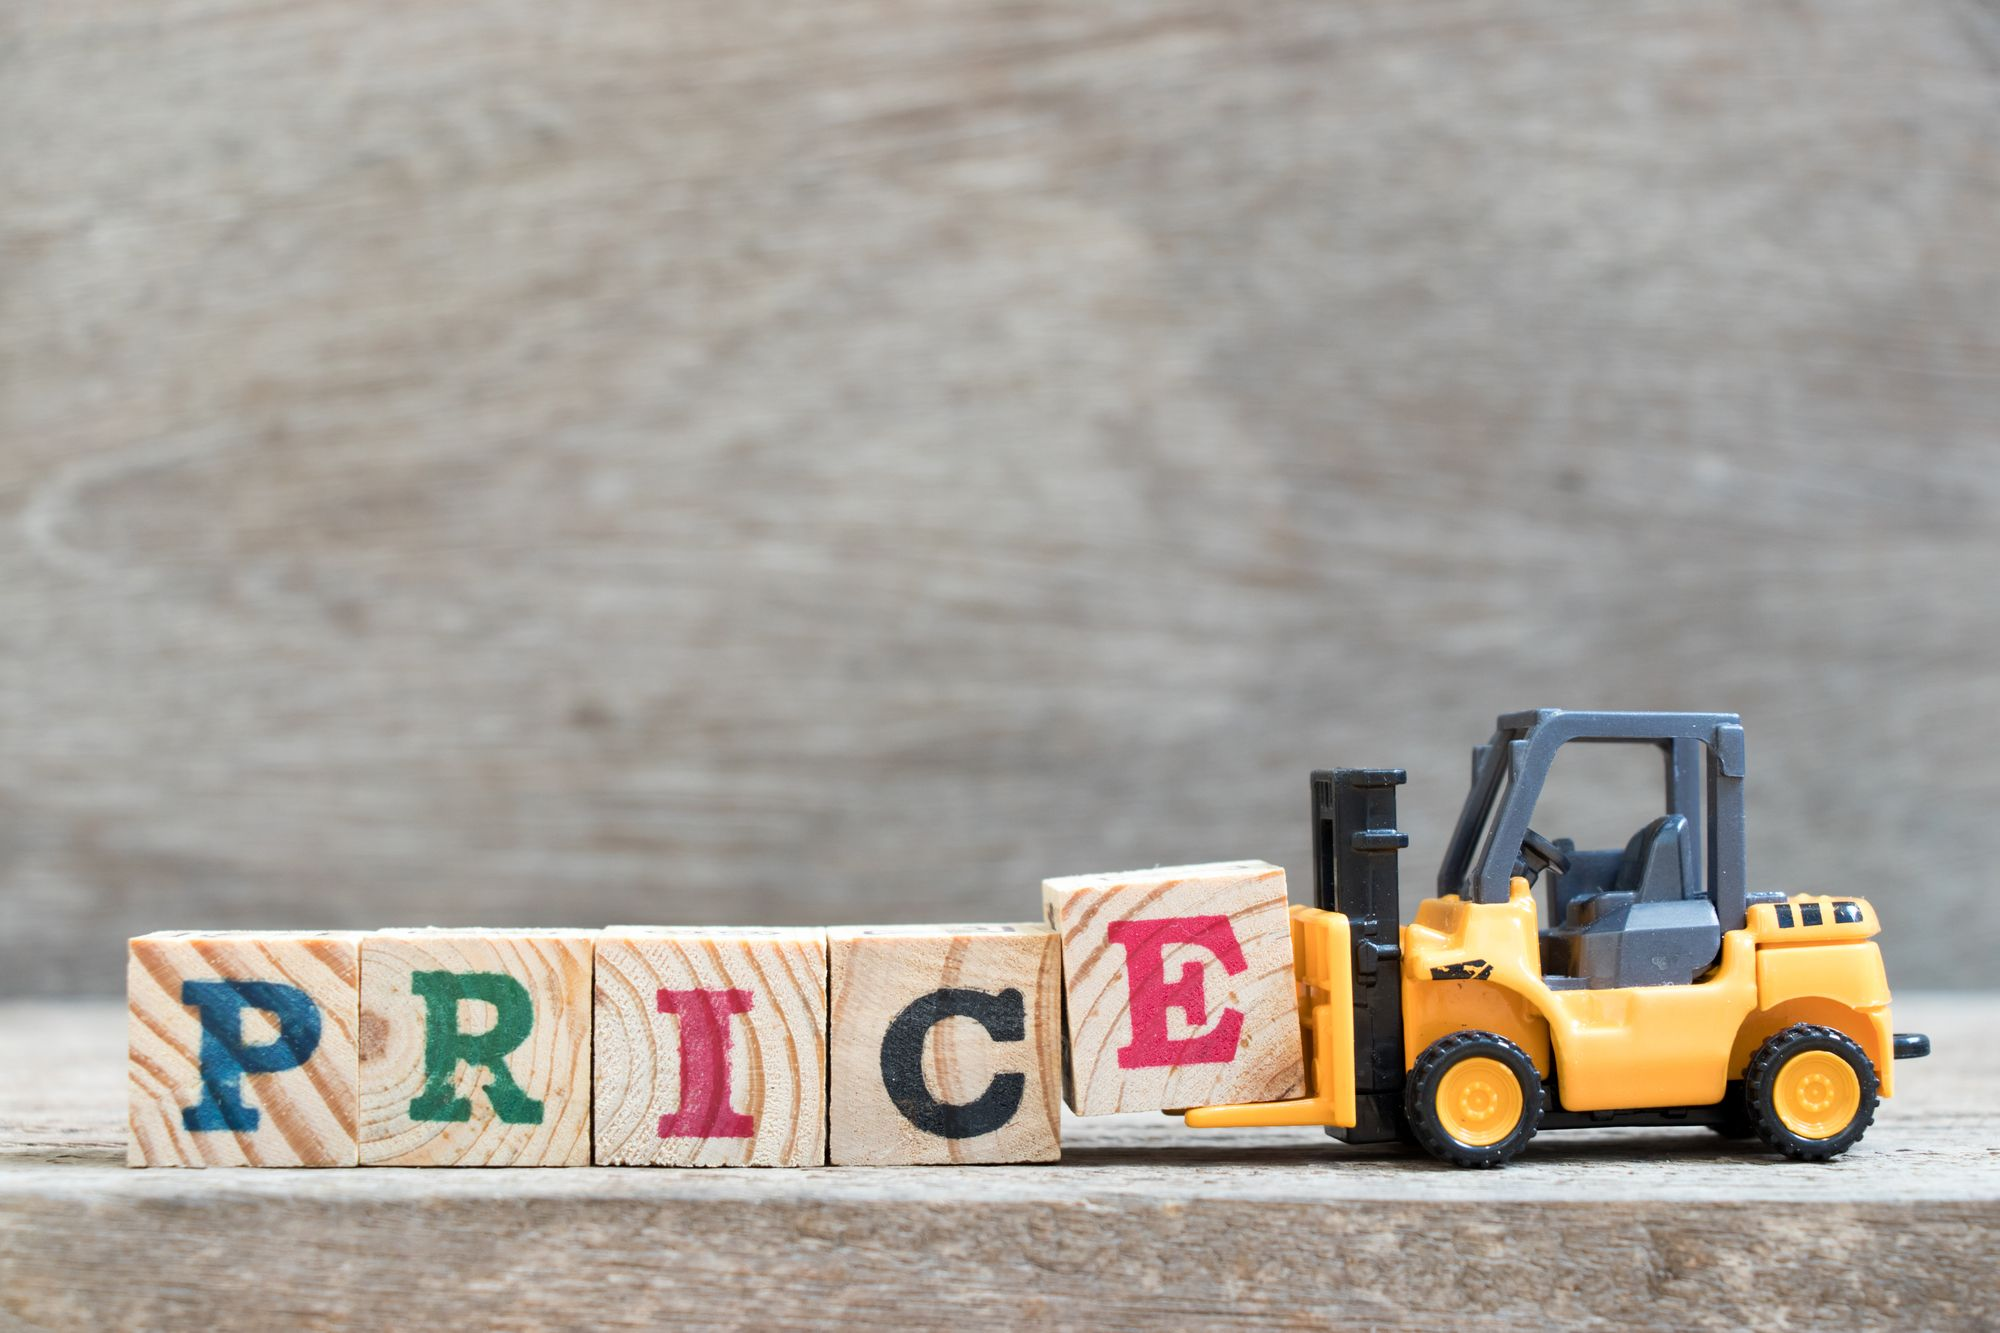 How To Determine The Price Of A Product? All About Product Pricing Methods.